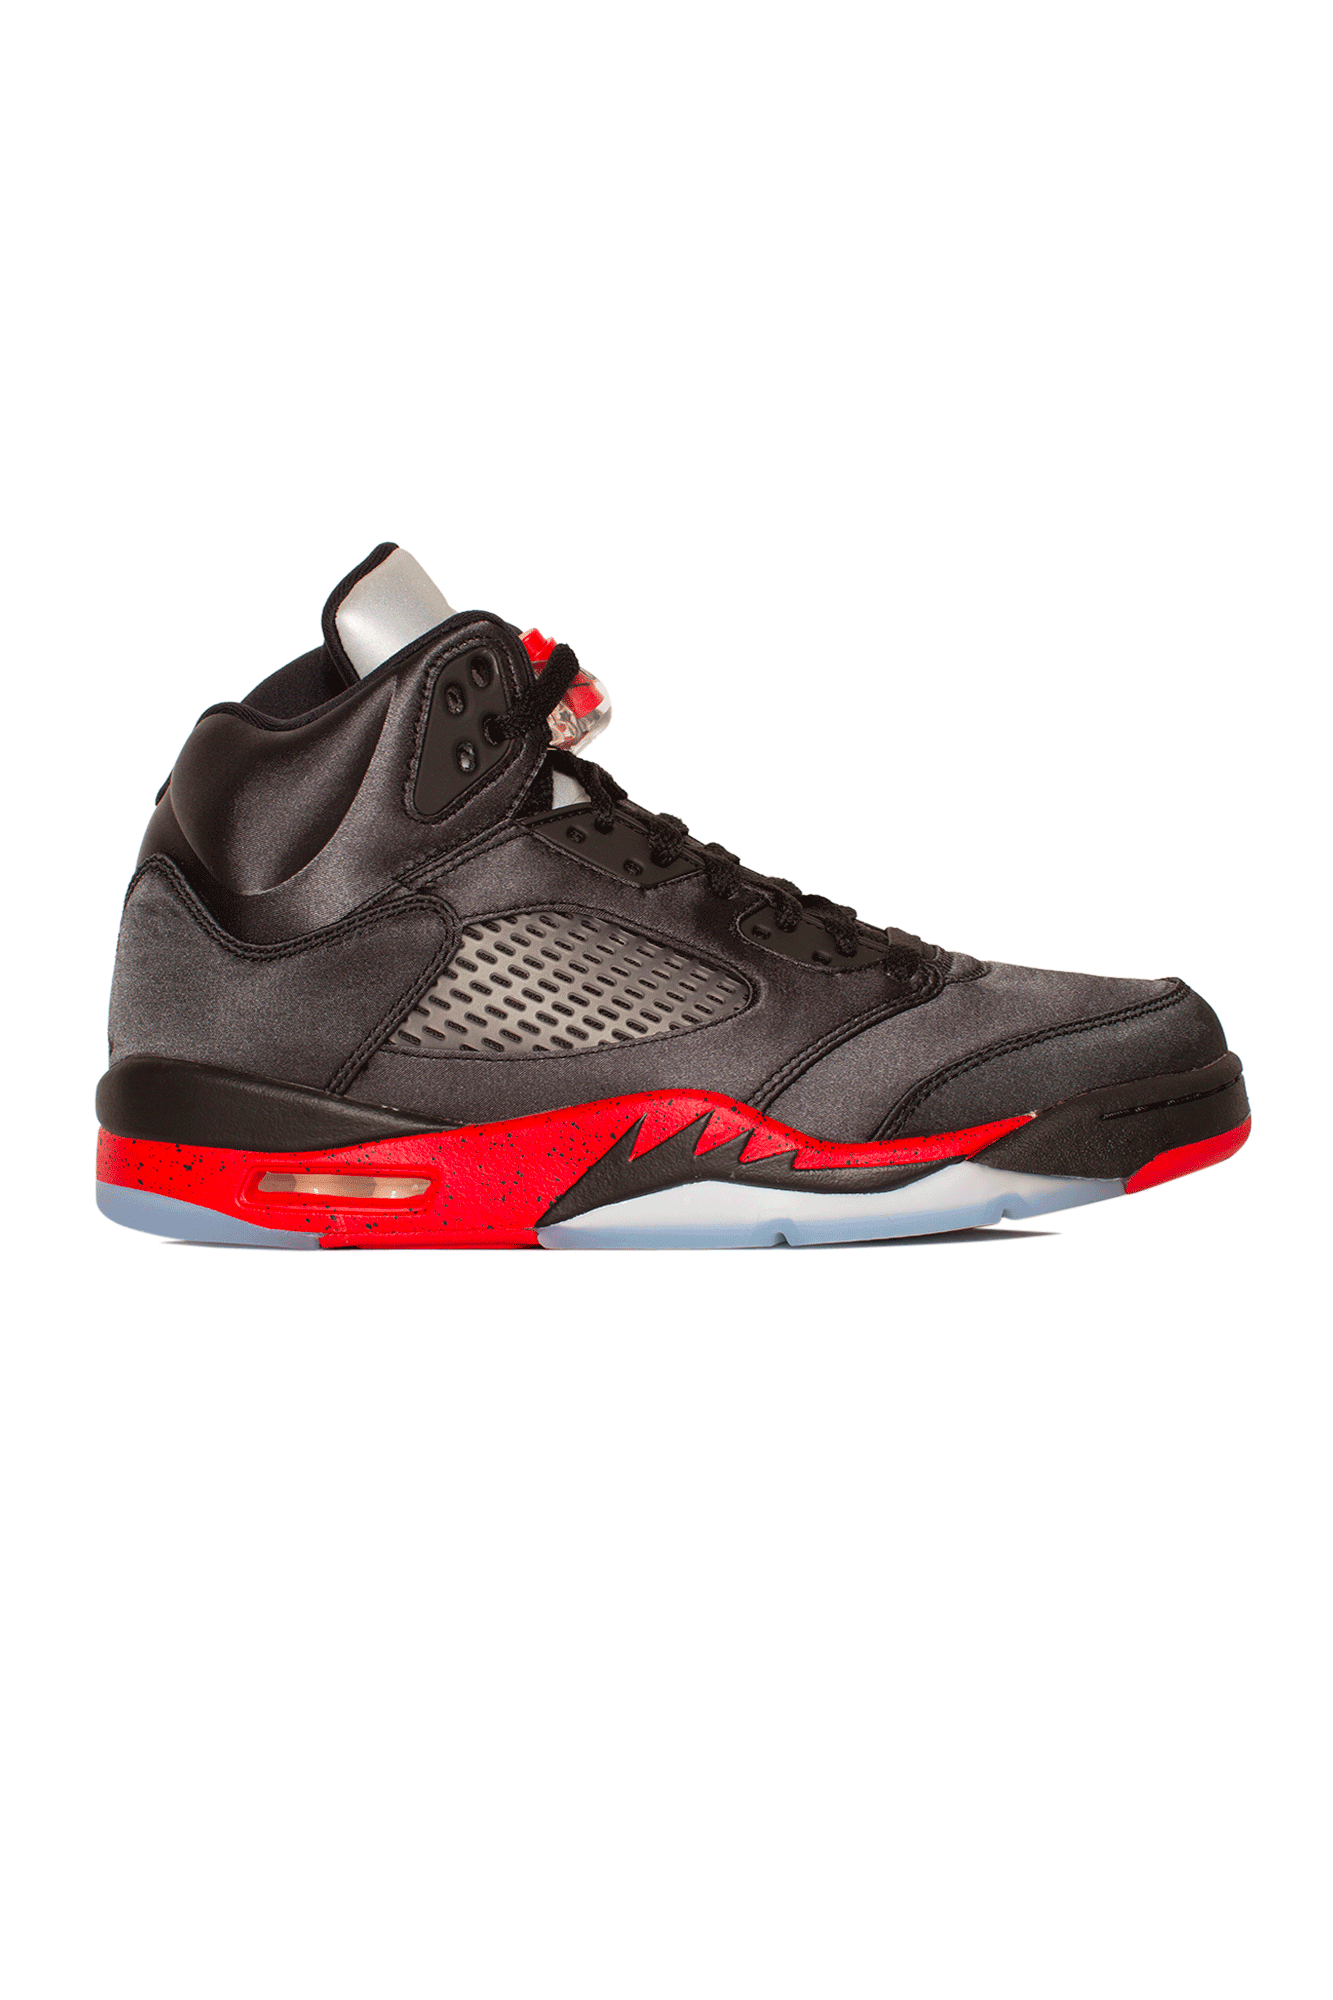 Sneakers Air Jordan 5 Retro Black - One Block Down